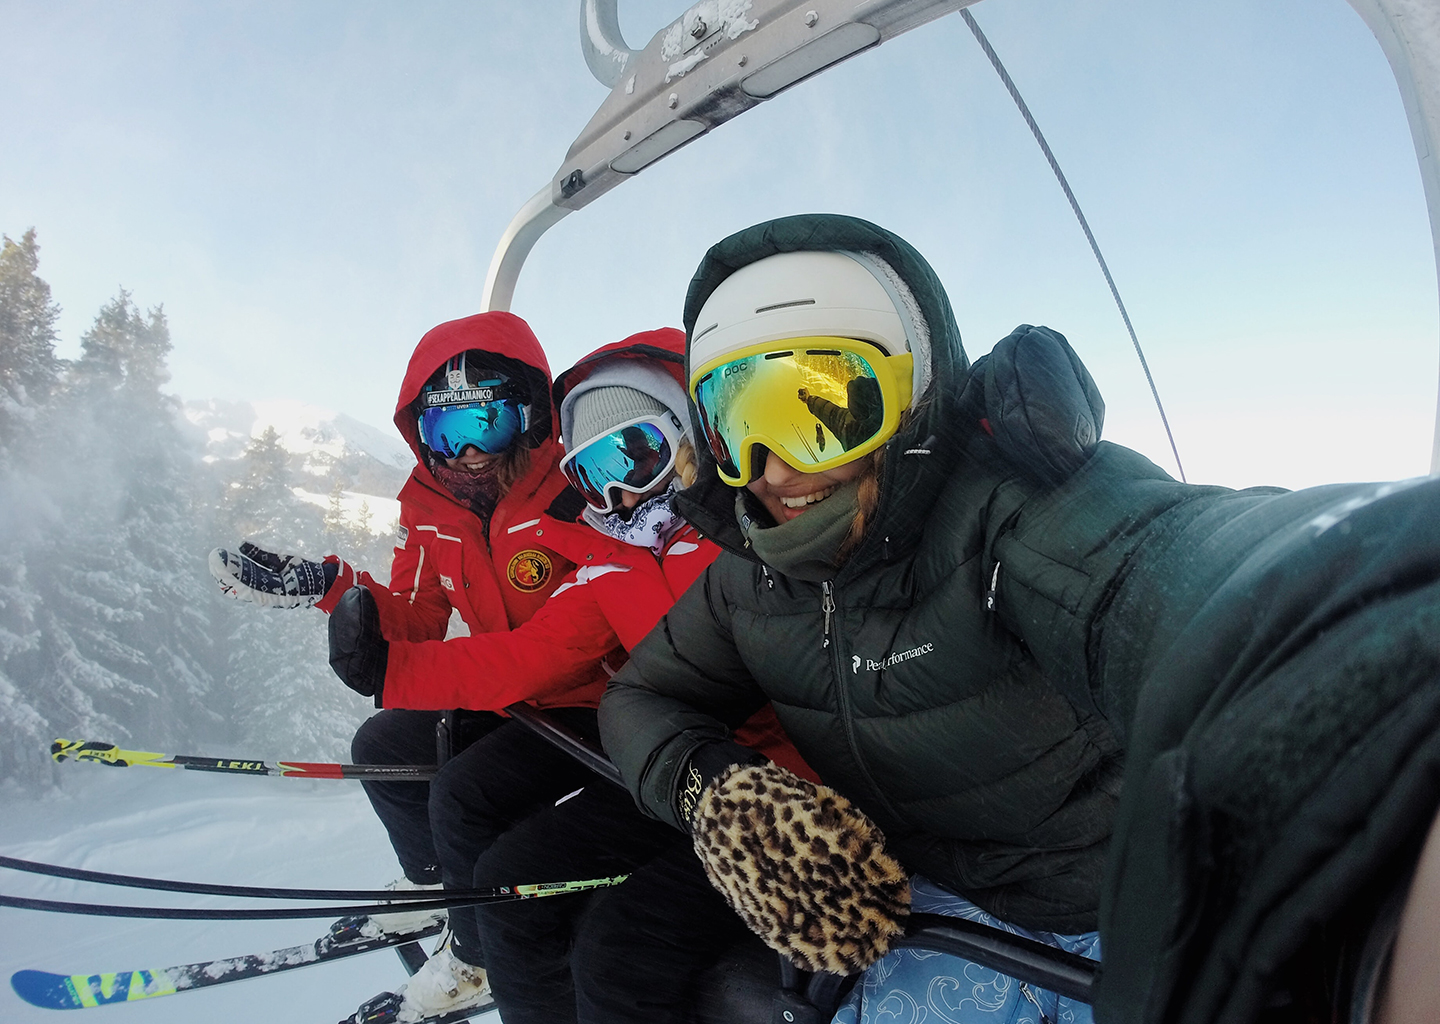 Friends Pose for a Selfie on a Park City Chairlift